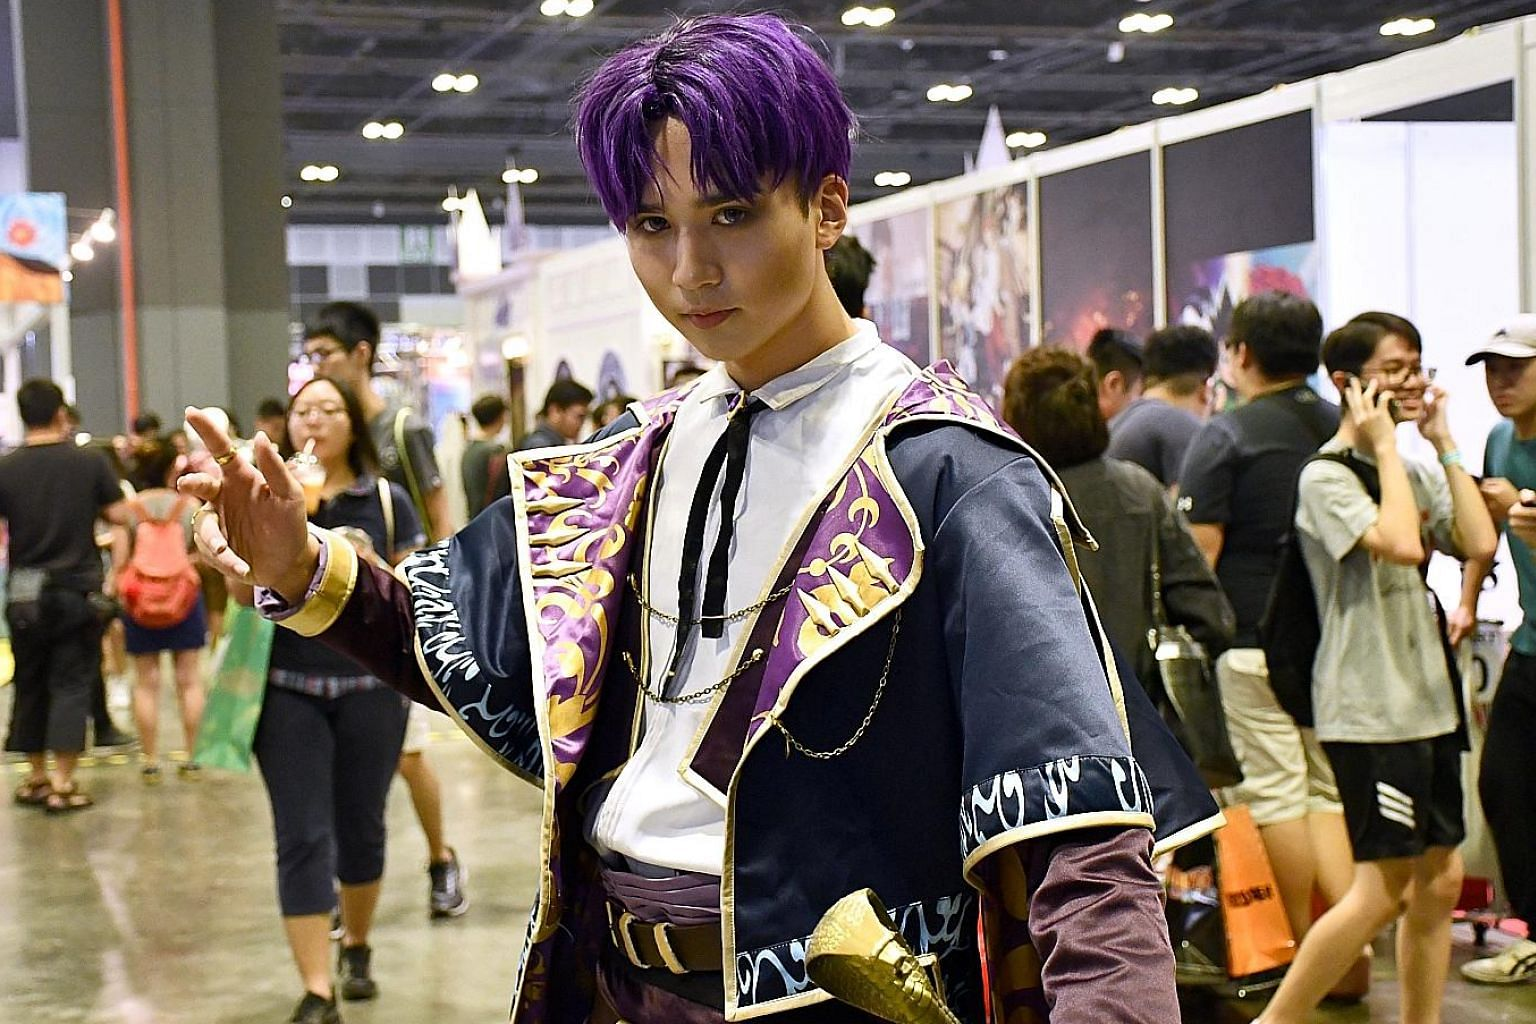 Cosplayer Eiji Wong, who works as a photography assistant at a studio in Kuala Lumpur, at the Anime Festival Asia, which took place from Nov 30 to Dec 2 at the Suntec Singapore Convention and Exhibition Centre.